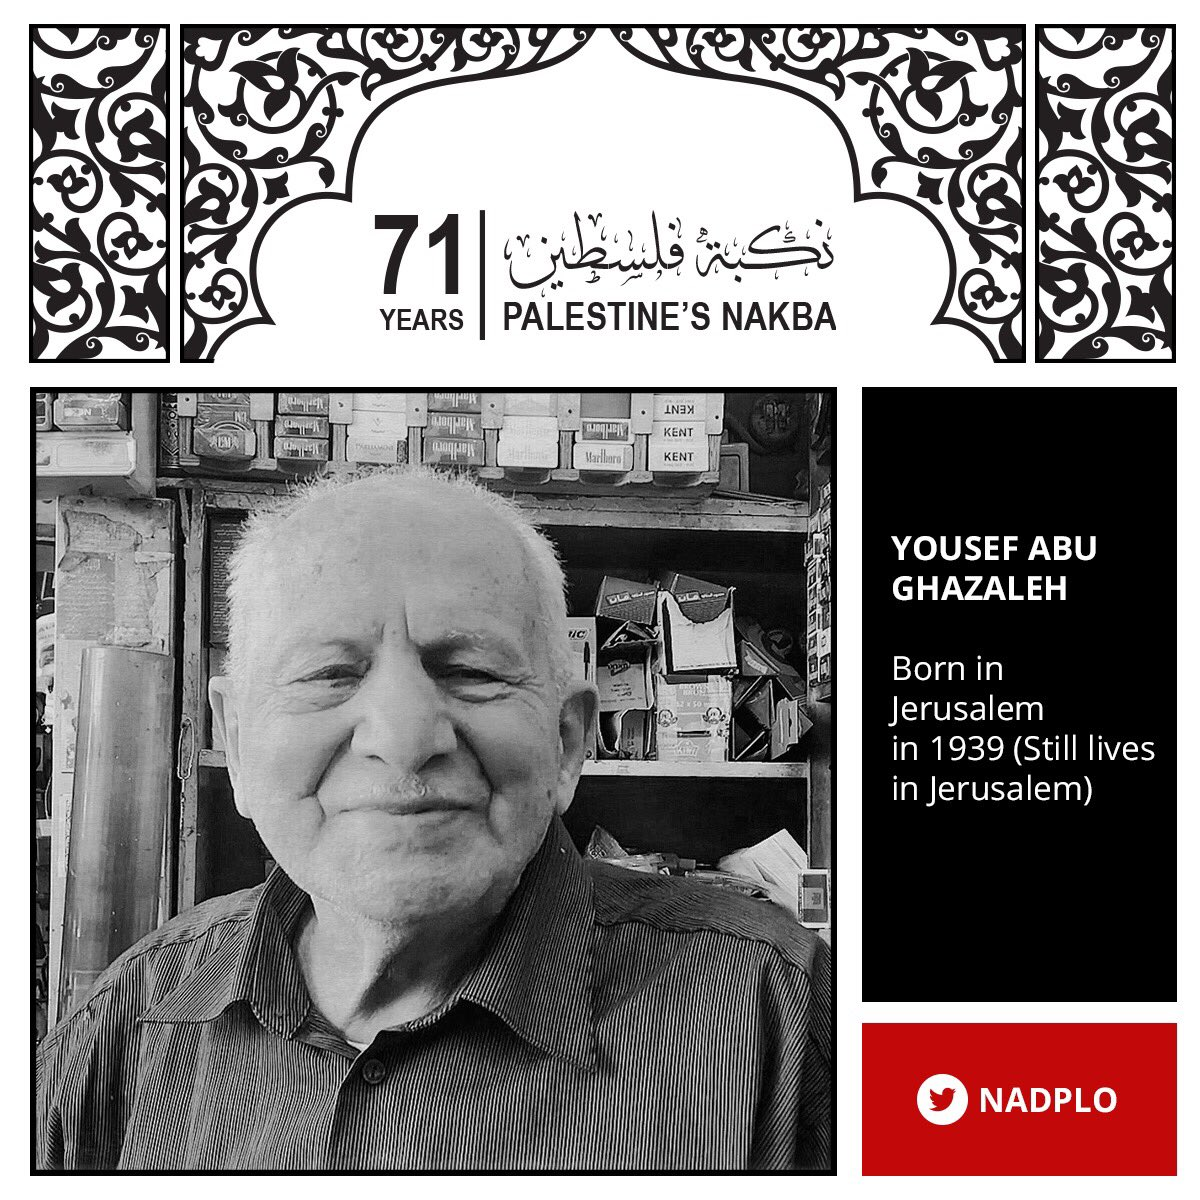 "#Nakba71|71 Testimonies|71 Years: ""The outlook is dark. And it will be worse with Trump's actions. We feel like we have no backbone and no one to protect us."" tinyurl.com/y5njoz5b #NakbaDay #Nakba #Palestine"